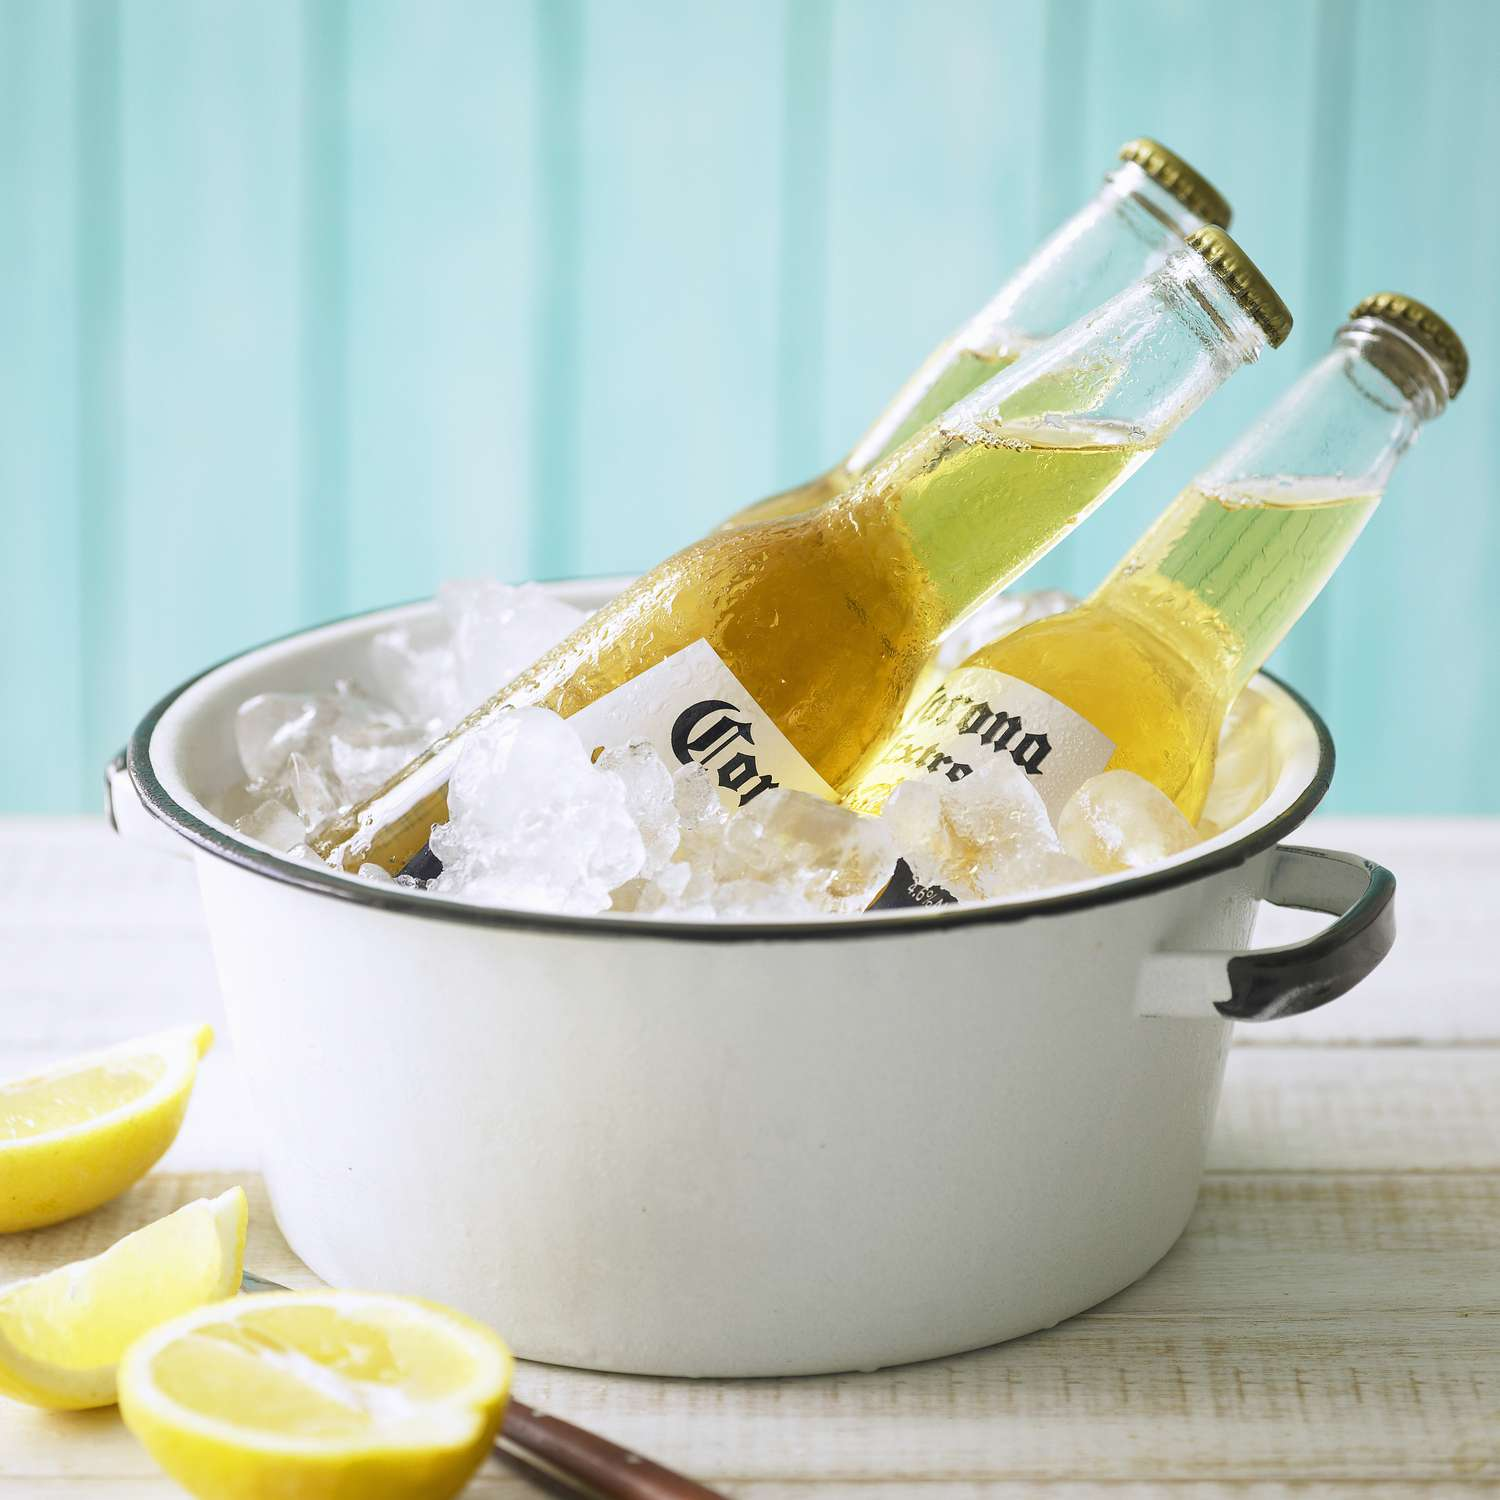 Three bottles of Corona beer in a pot with ice and lemons on the table.